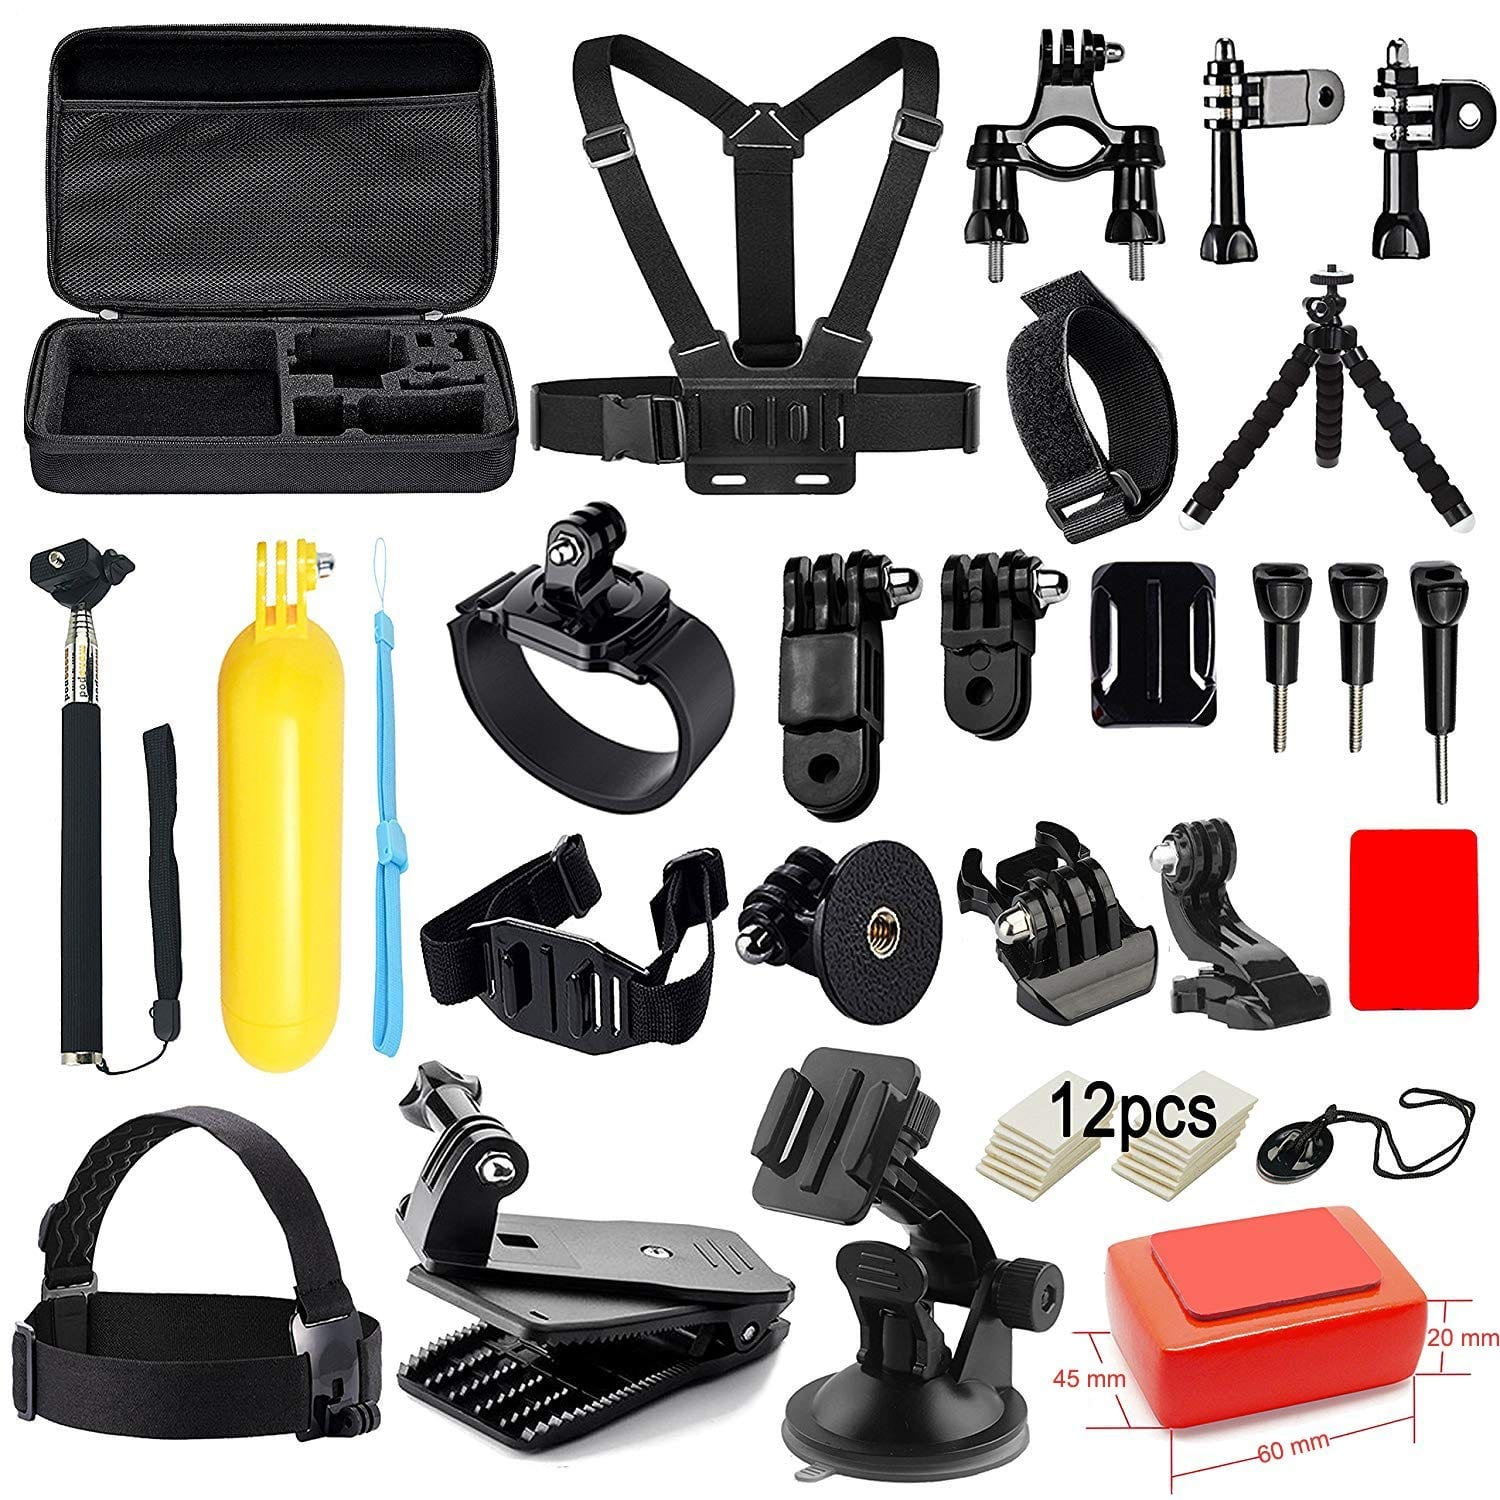 Top 10 Best Gopro Accessory Kits For Traveling New 2019